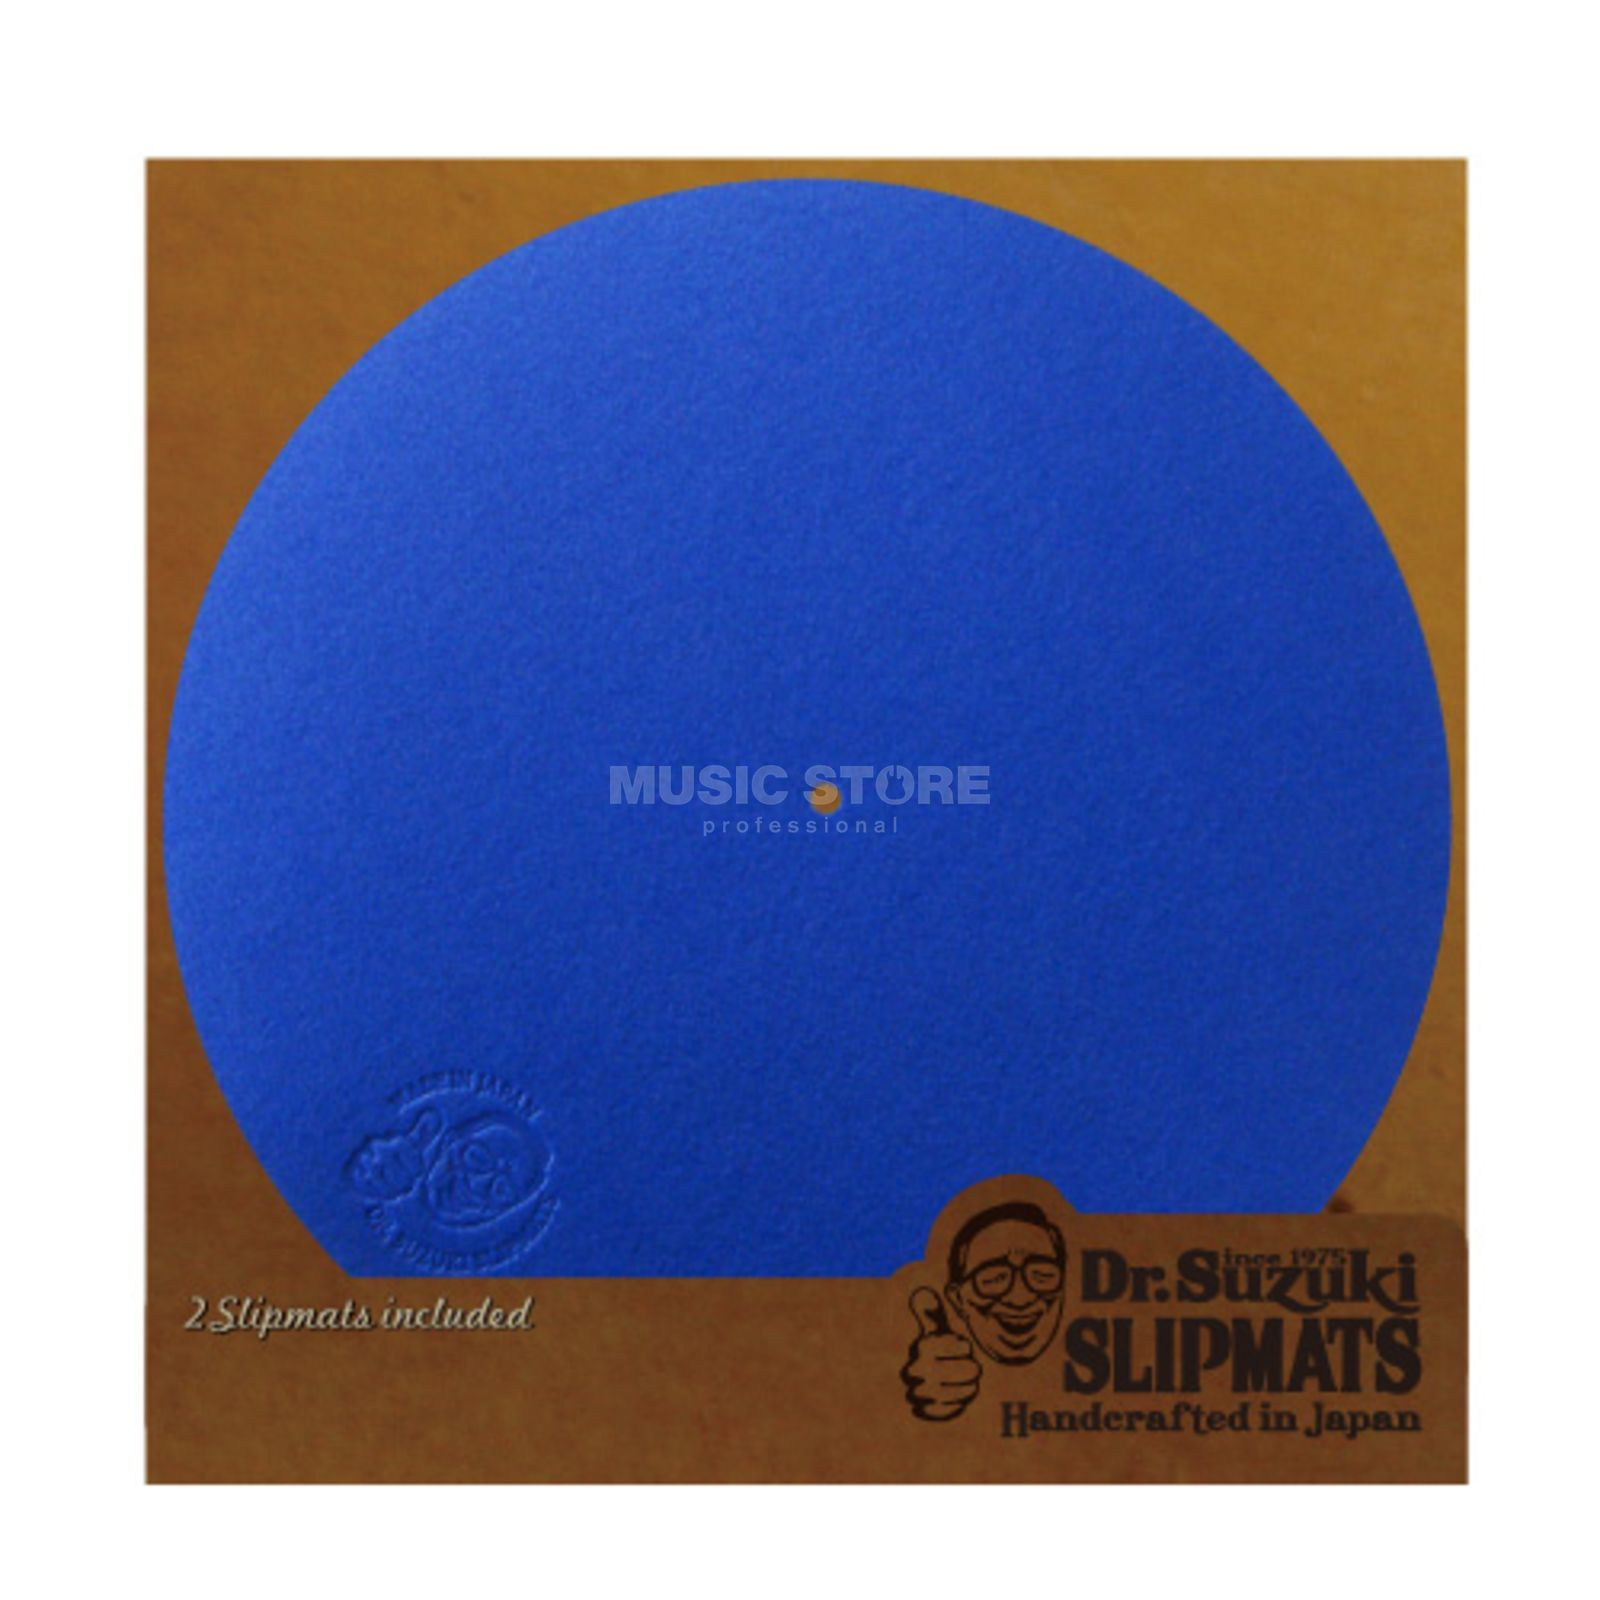 Tablecloth Dr.Suzuki Mix Edition Slipmats blue (pair) Product Image